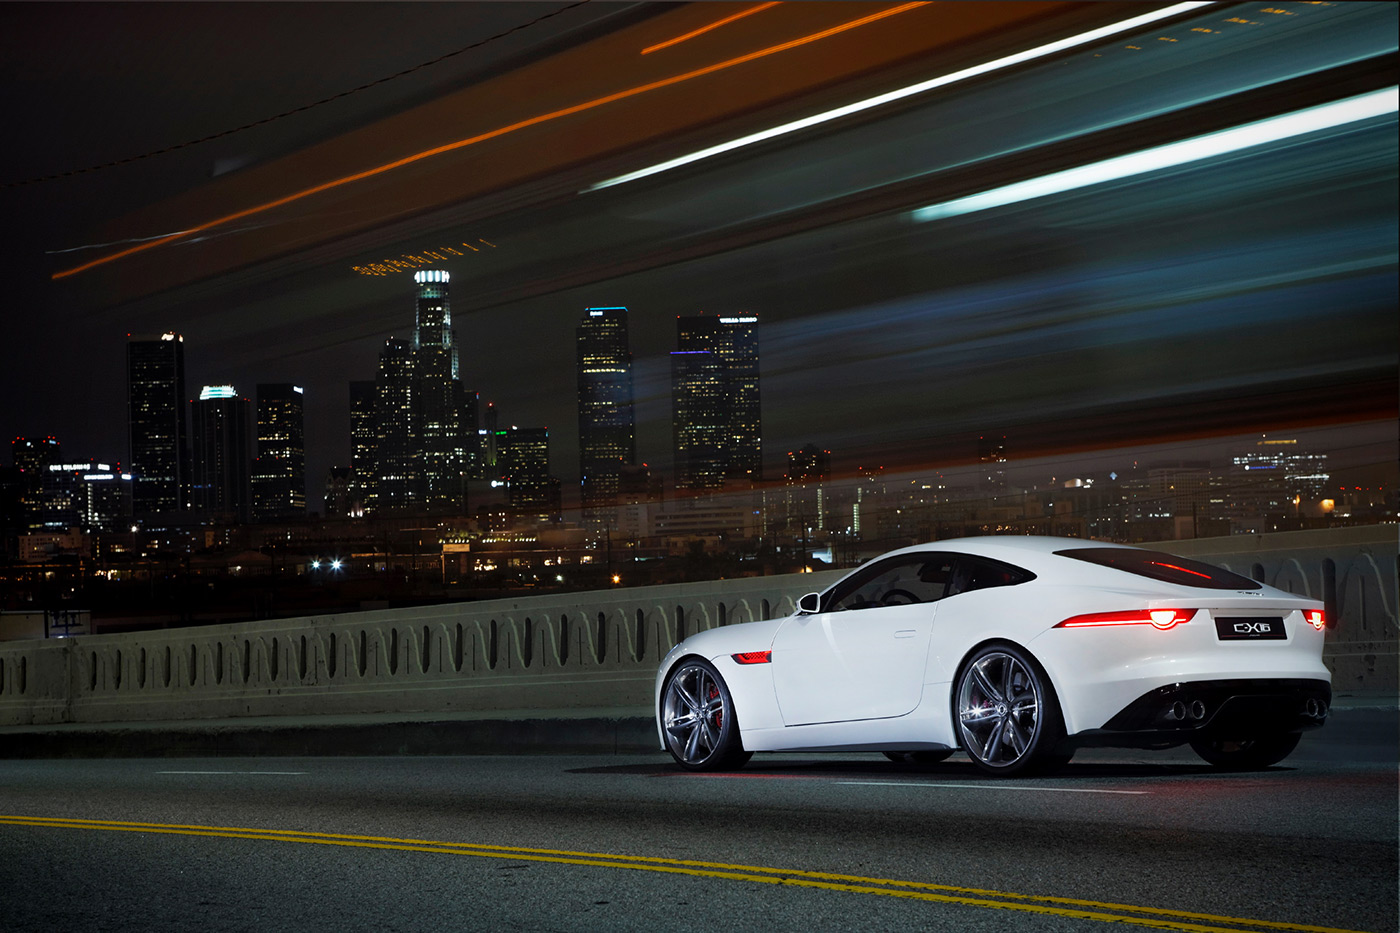 <p>Jaguar C-X16 on the now-demolished Sixth Street Bridge overlooking downtown Los Angeles.</p>